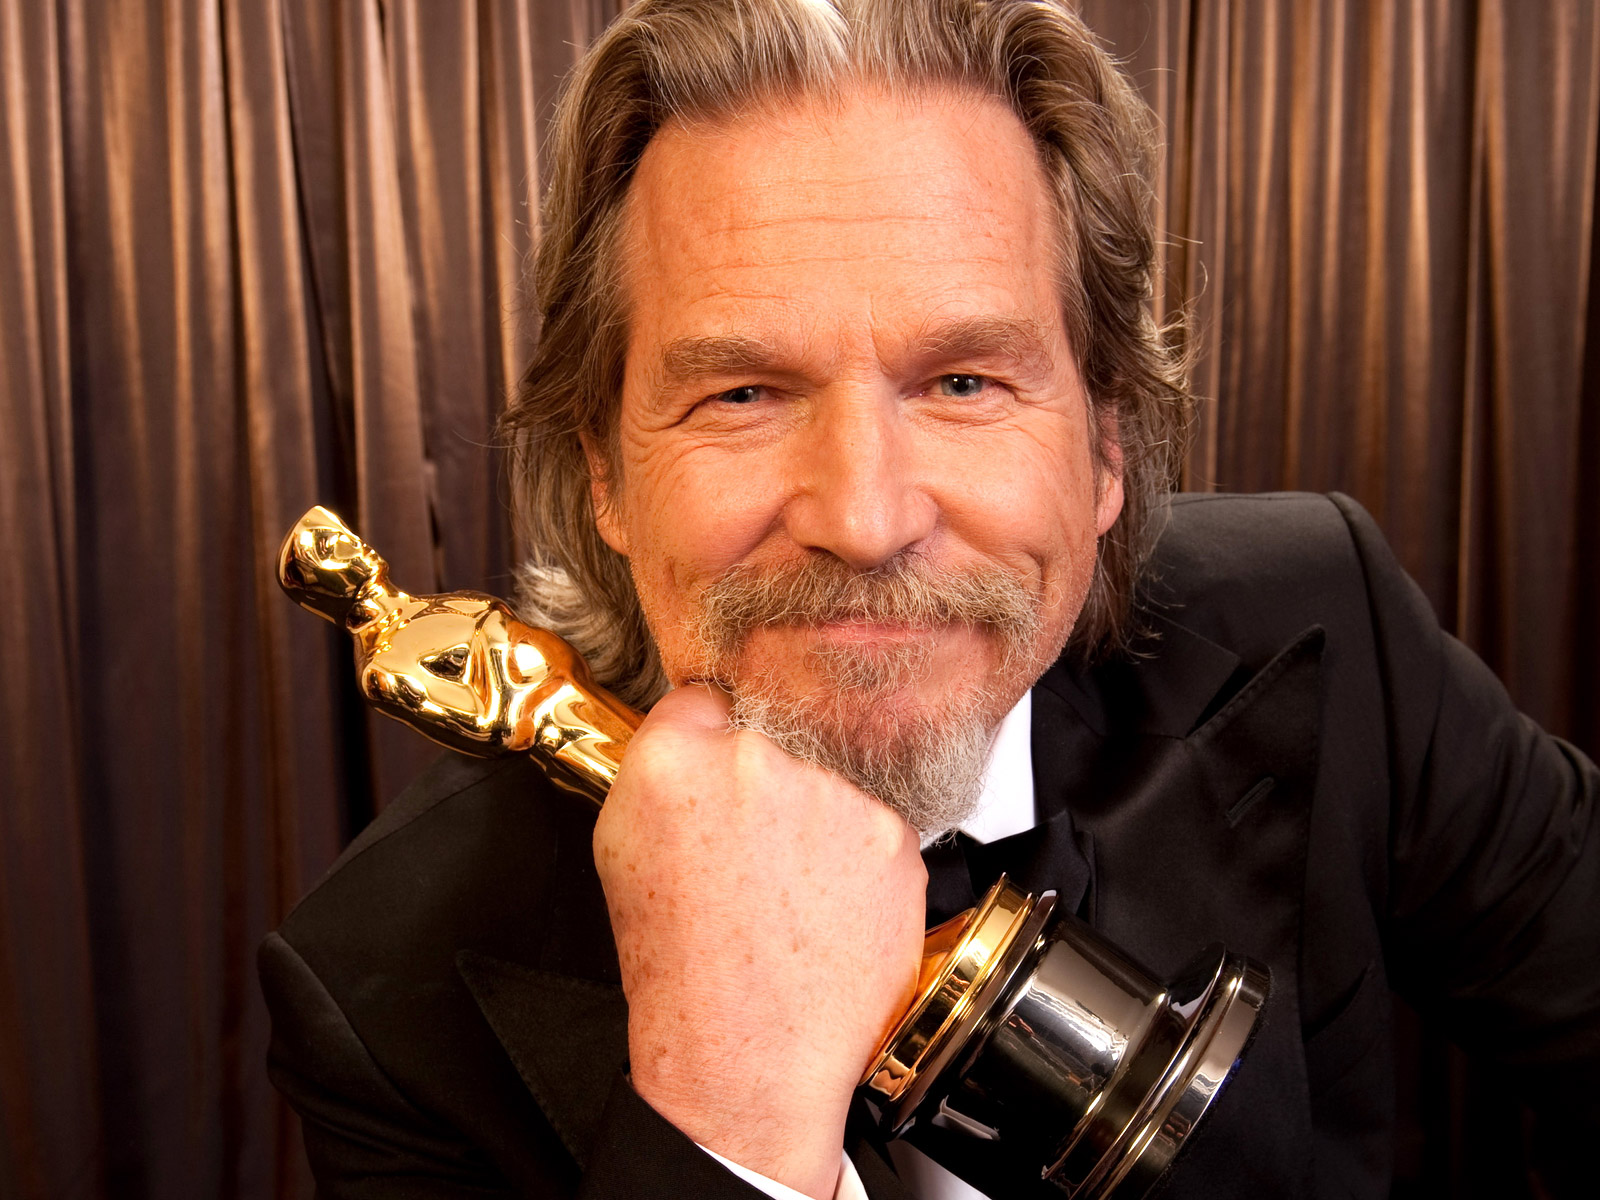 Jeff Bridges Wif HD Wallpaper Background Images 1600x1200